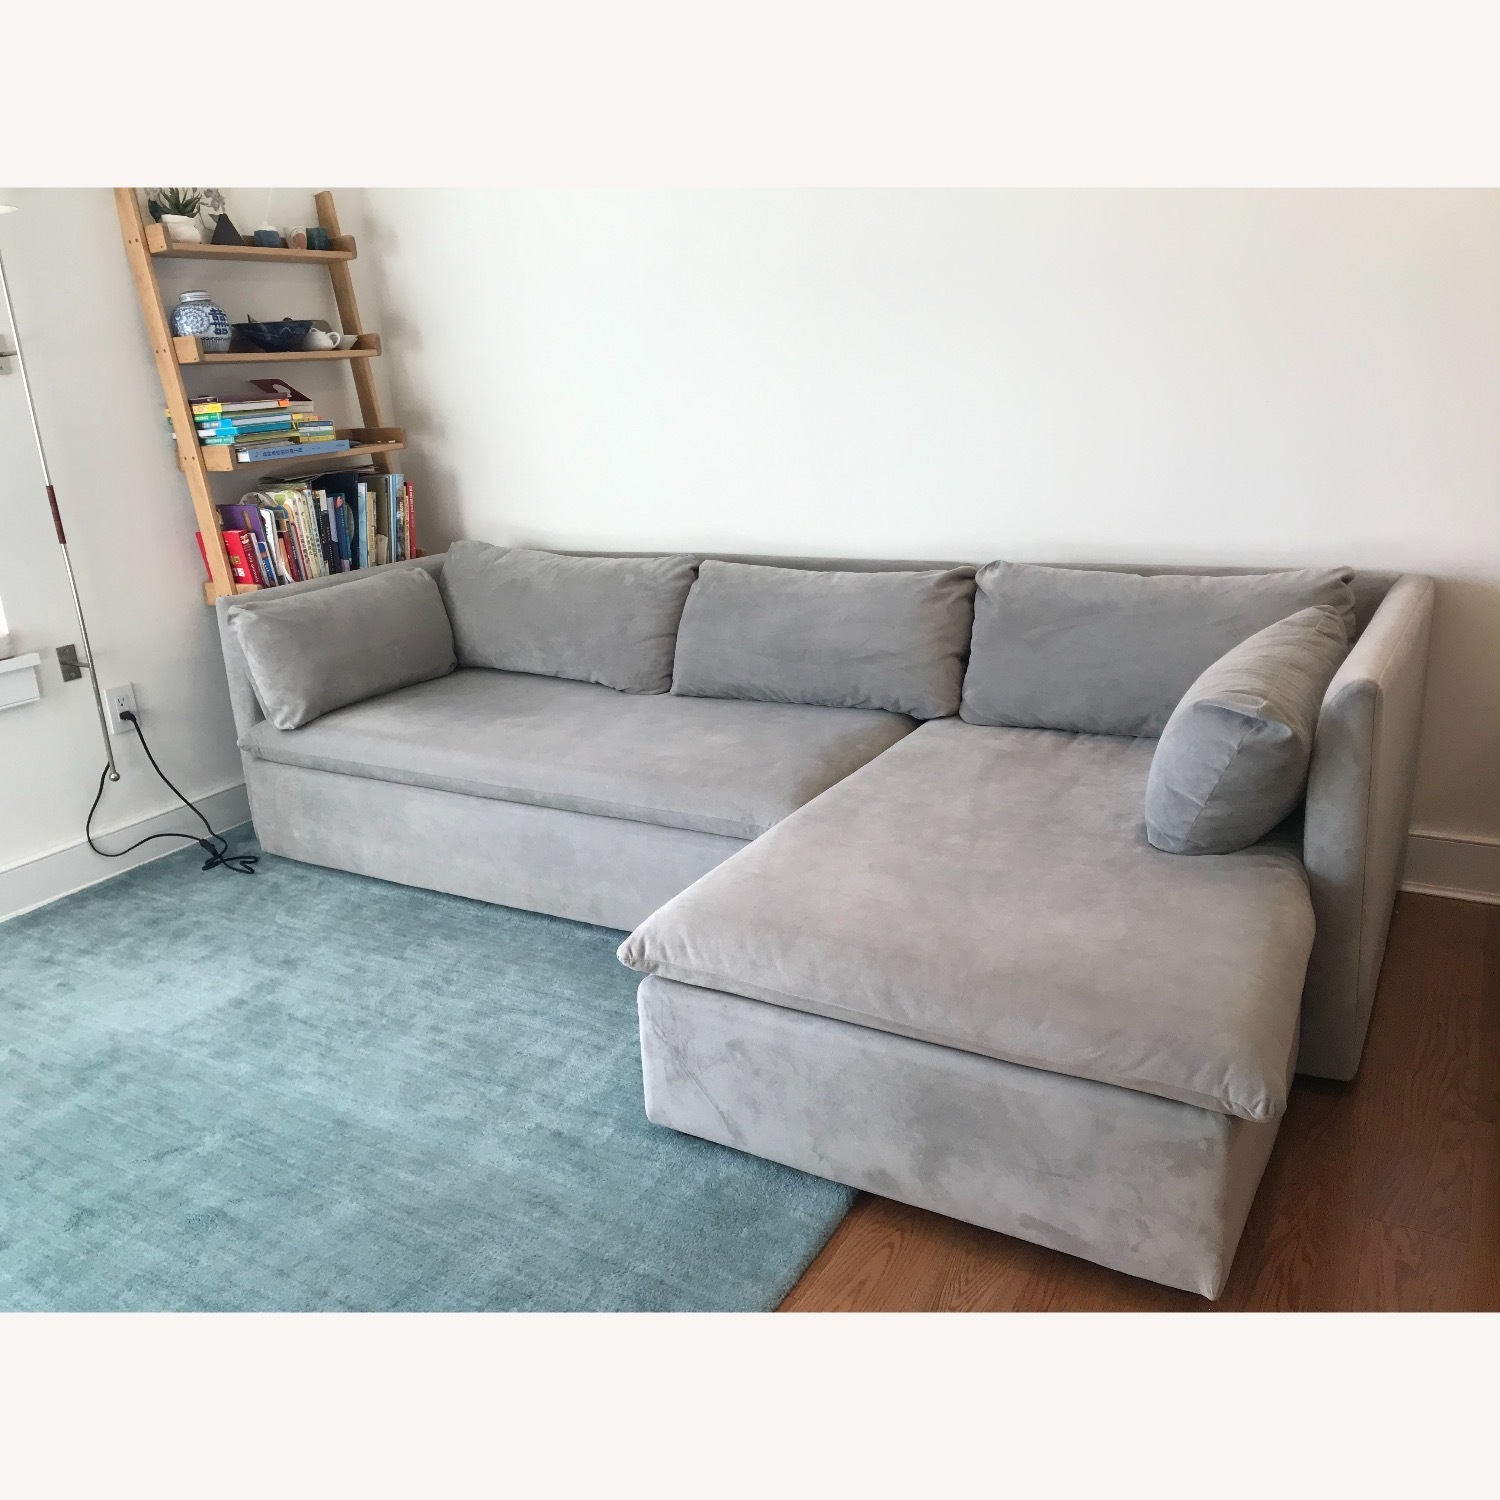 West Elm Shelter Sectional Sofa Dove Gray - image-4